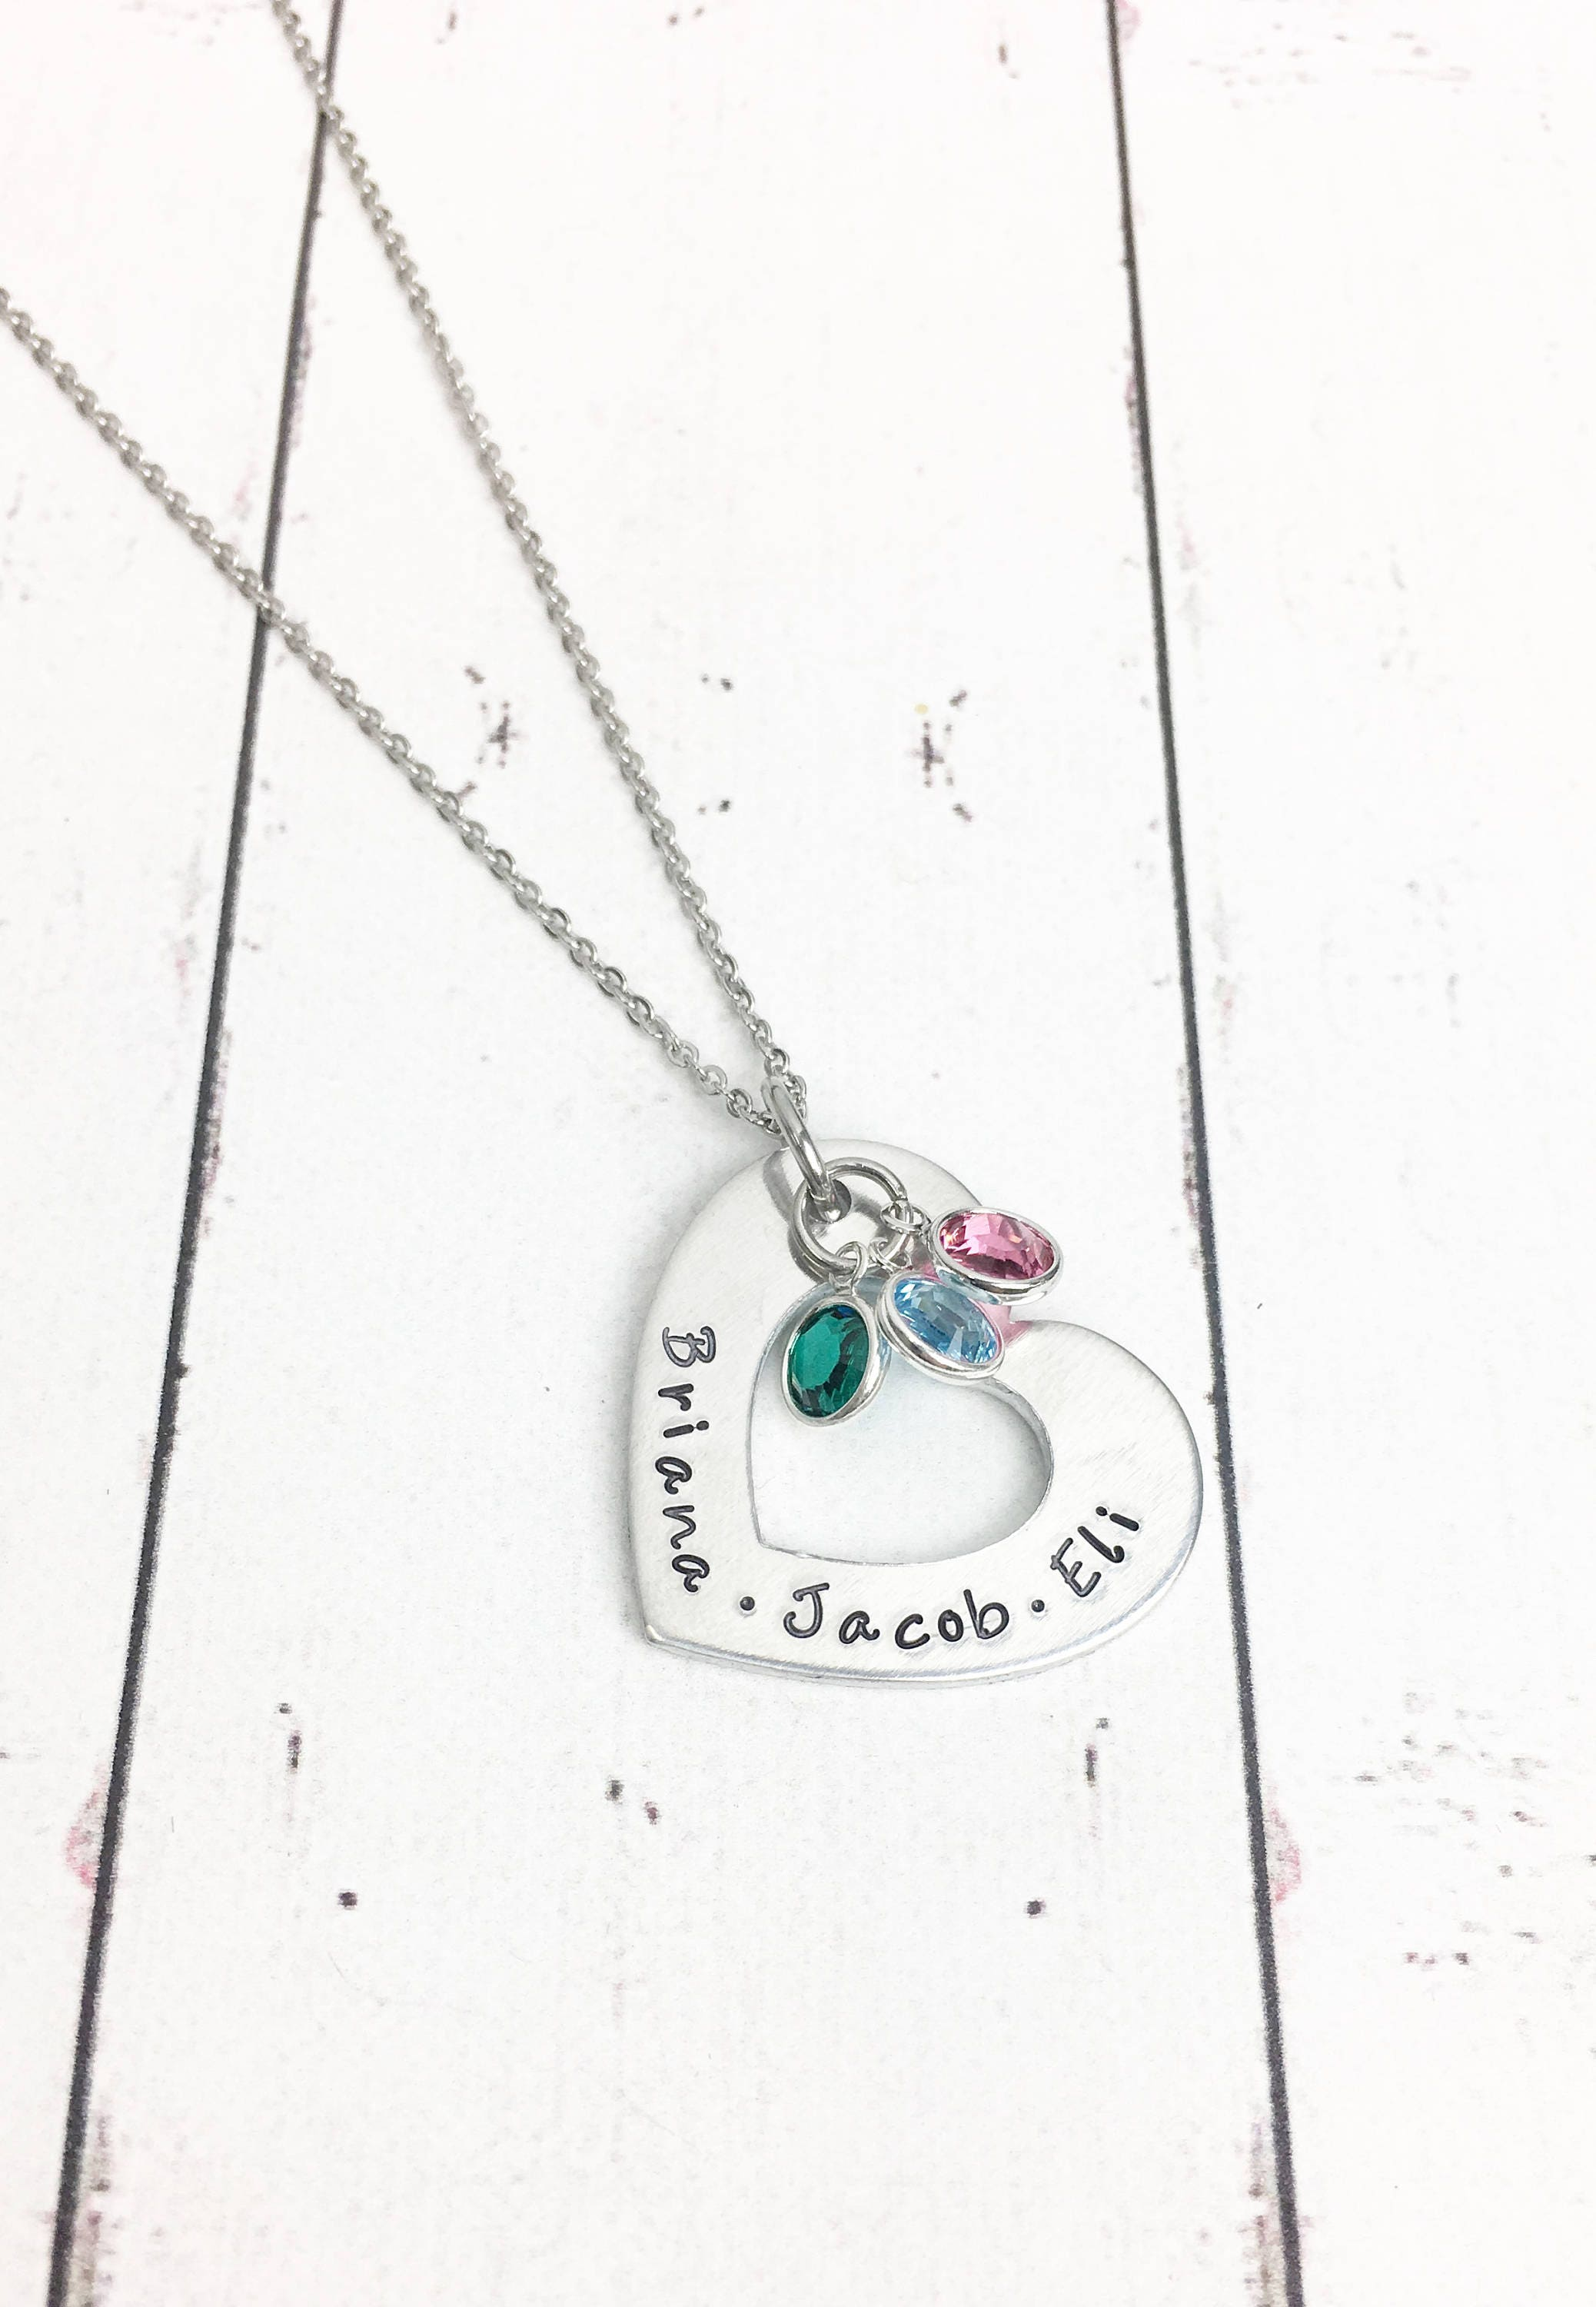 birthstone ip heart pendant available s keepsake jewelry sterling walmart mother family gold necklace personalized silver in grandkid over com